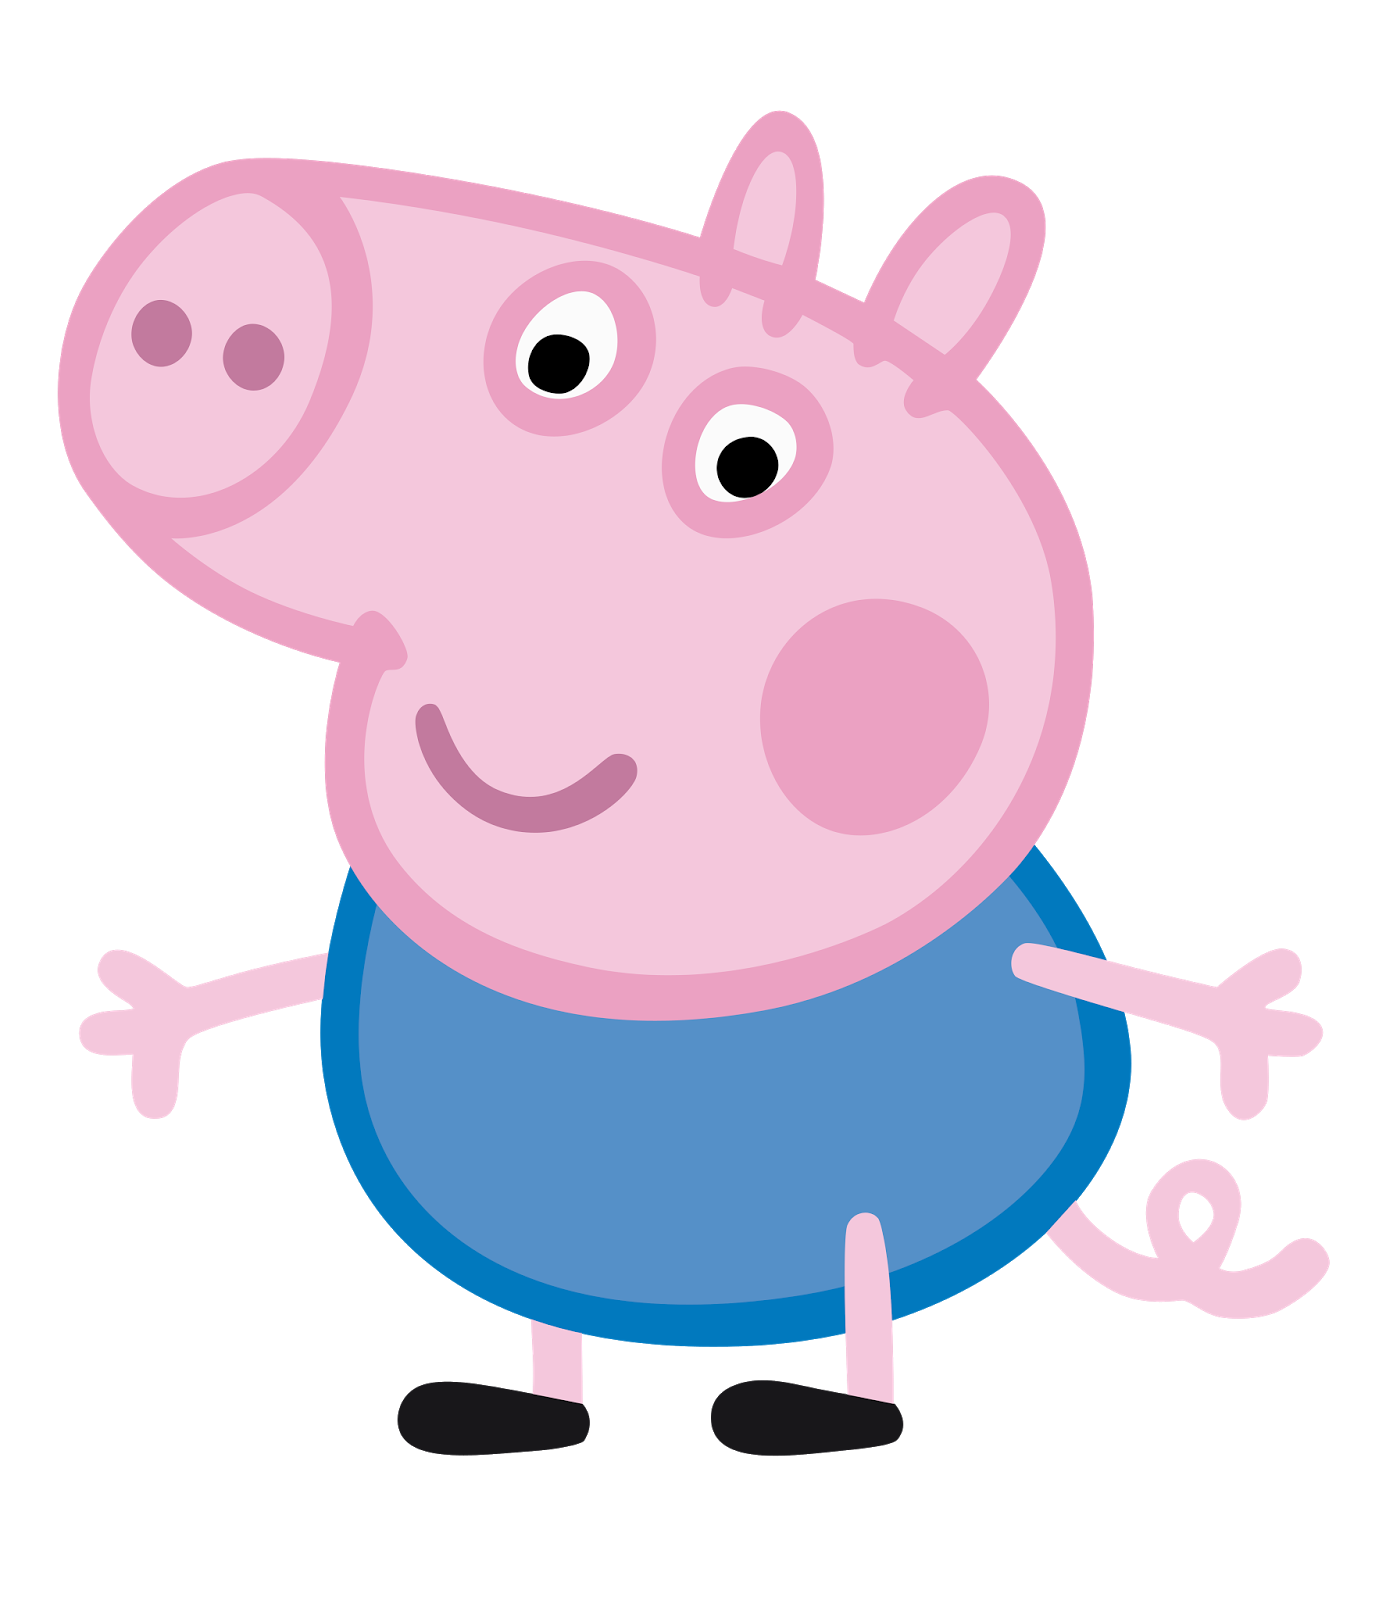 Png Peppa Pig Transparent Peppa Pig Png Images Pluspng